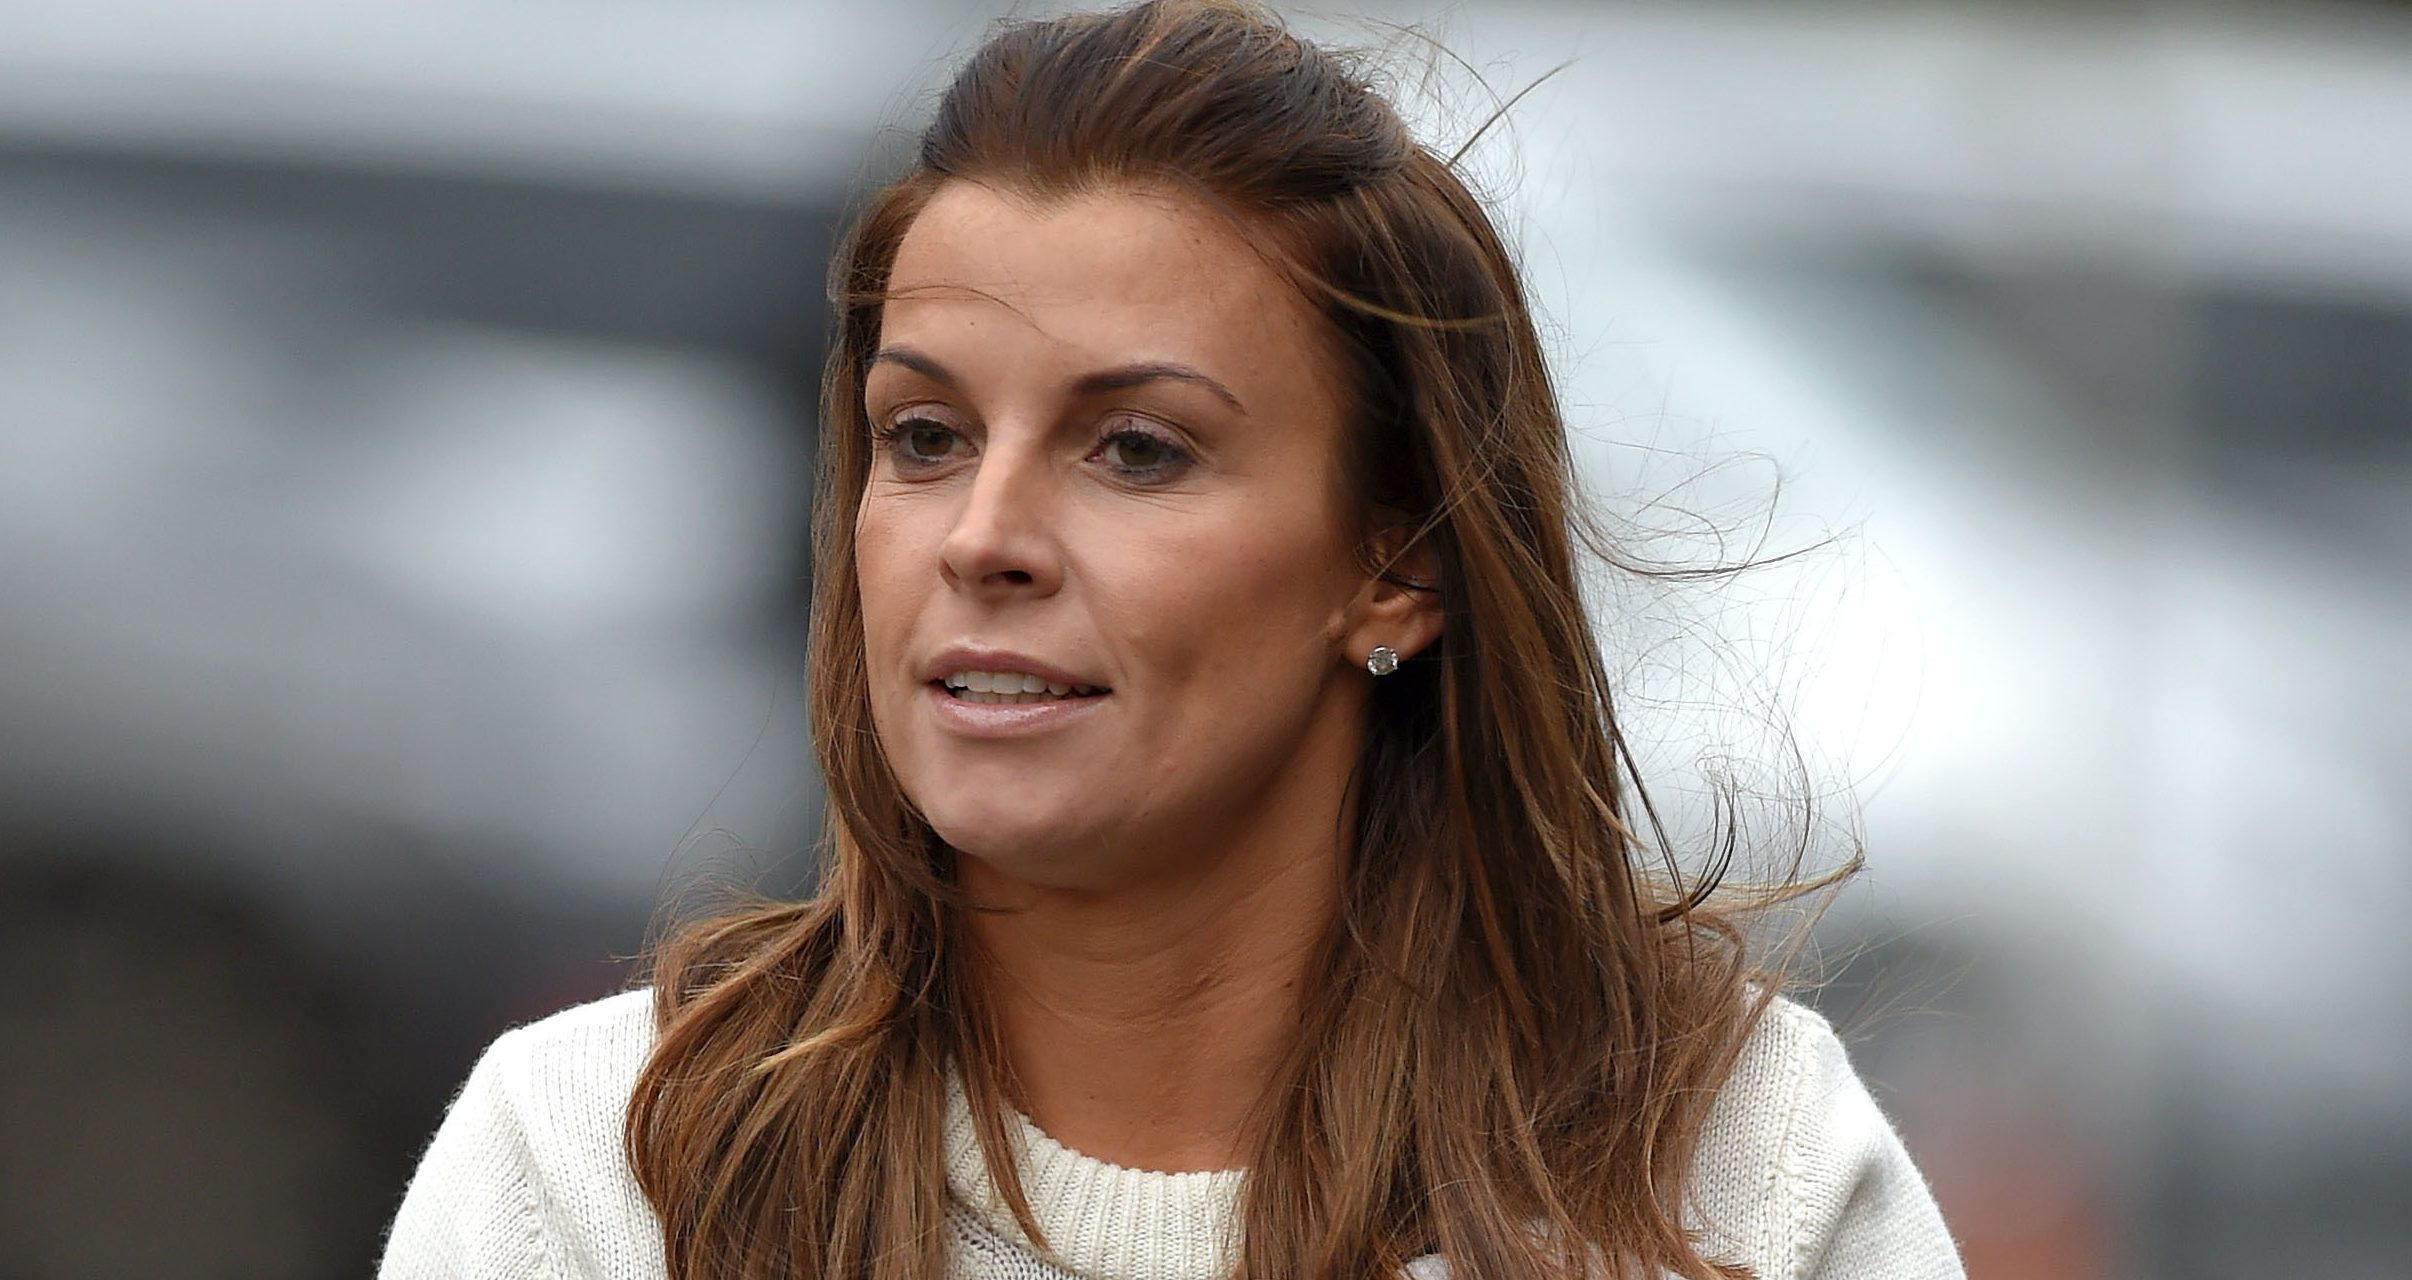 Coleen Rooney enjoys a 'perfect weekend' as fans gush about her 'pretty' mum